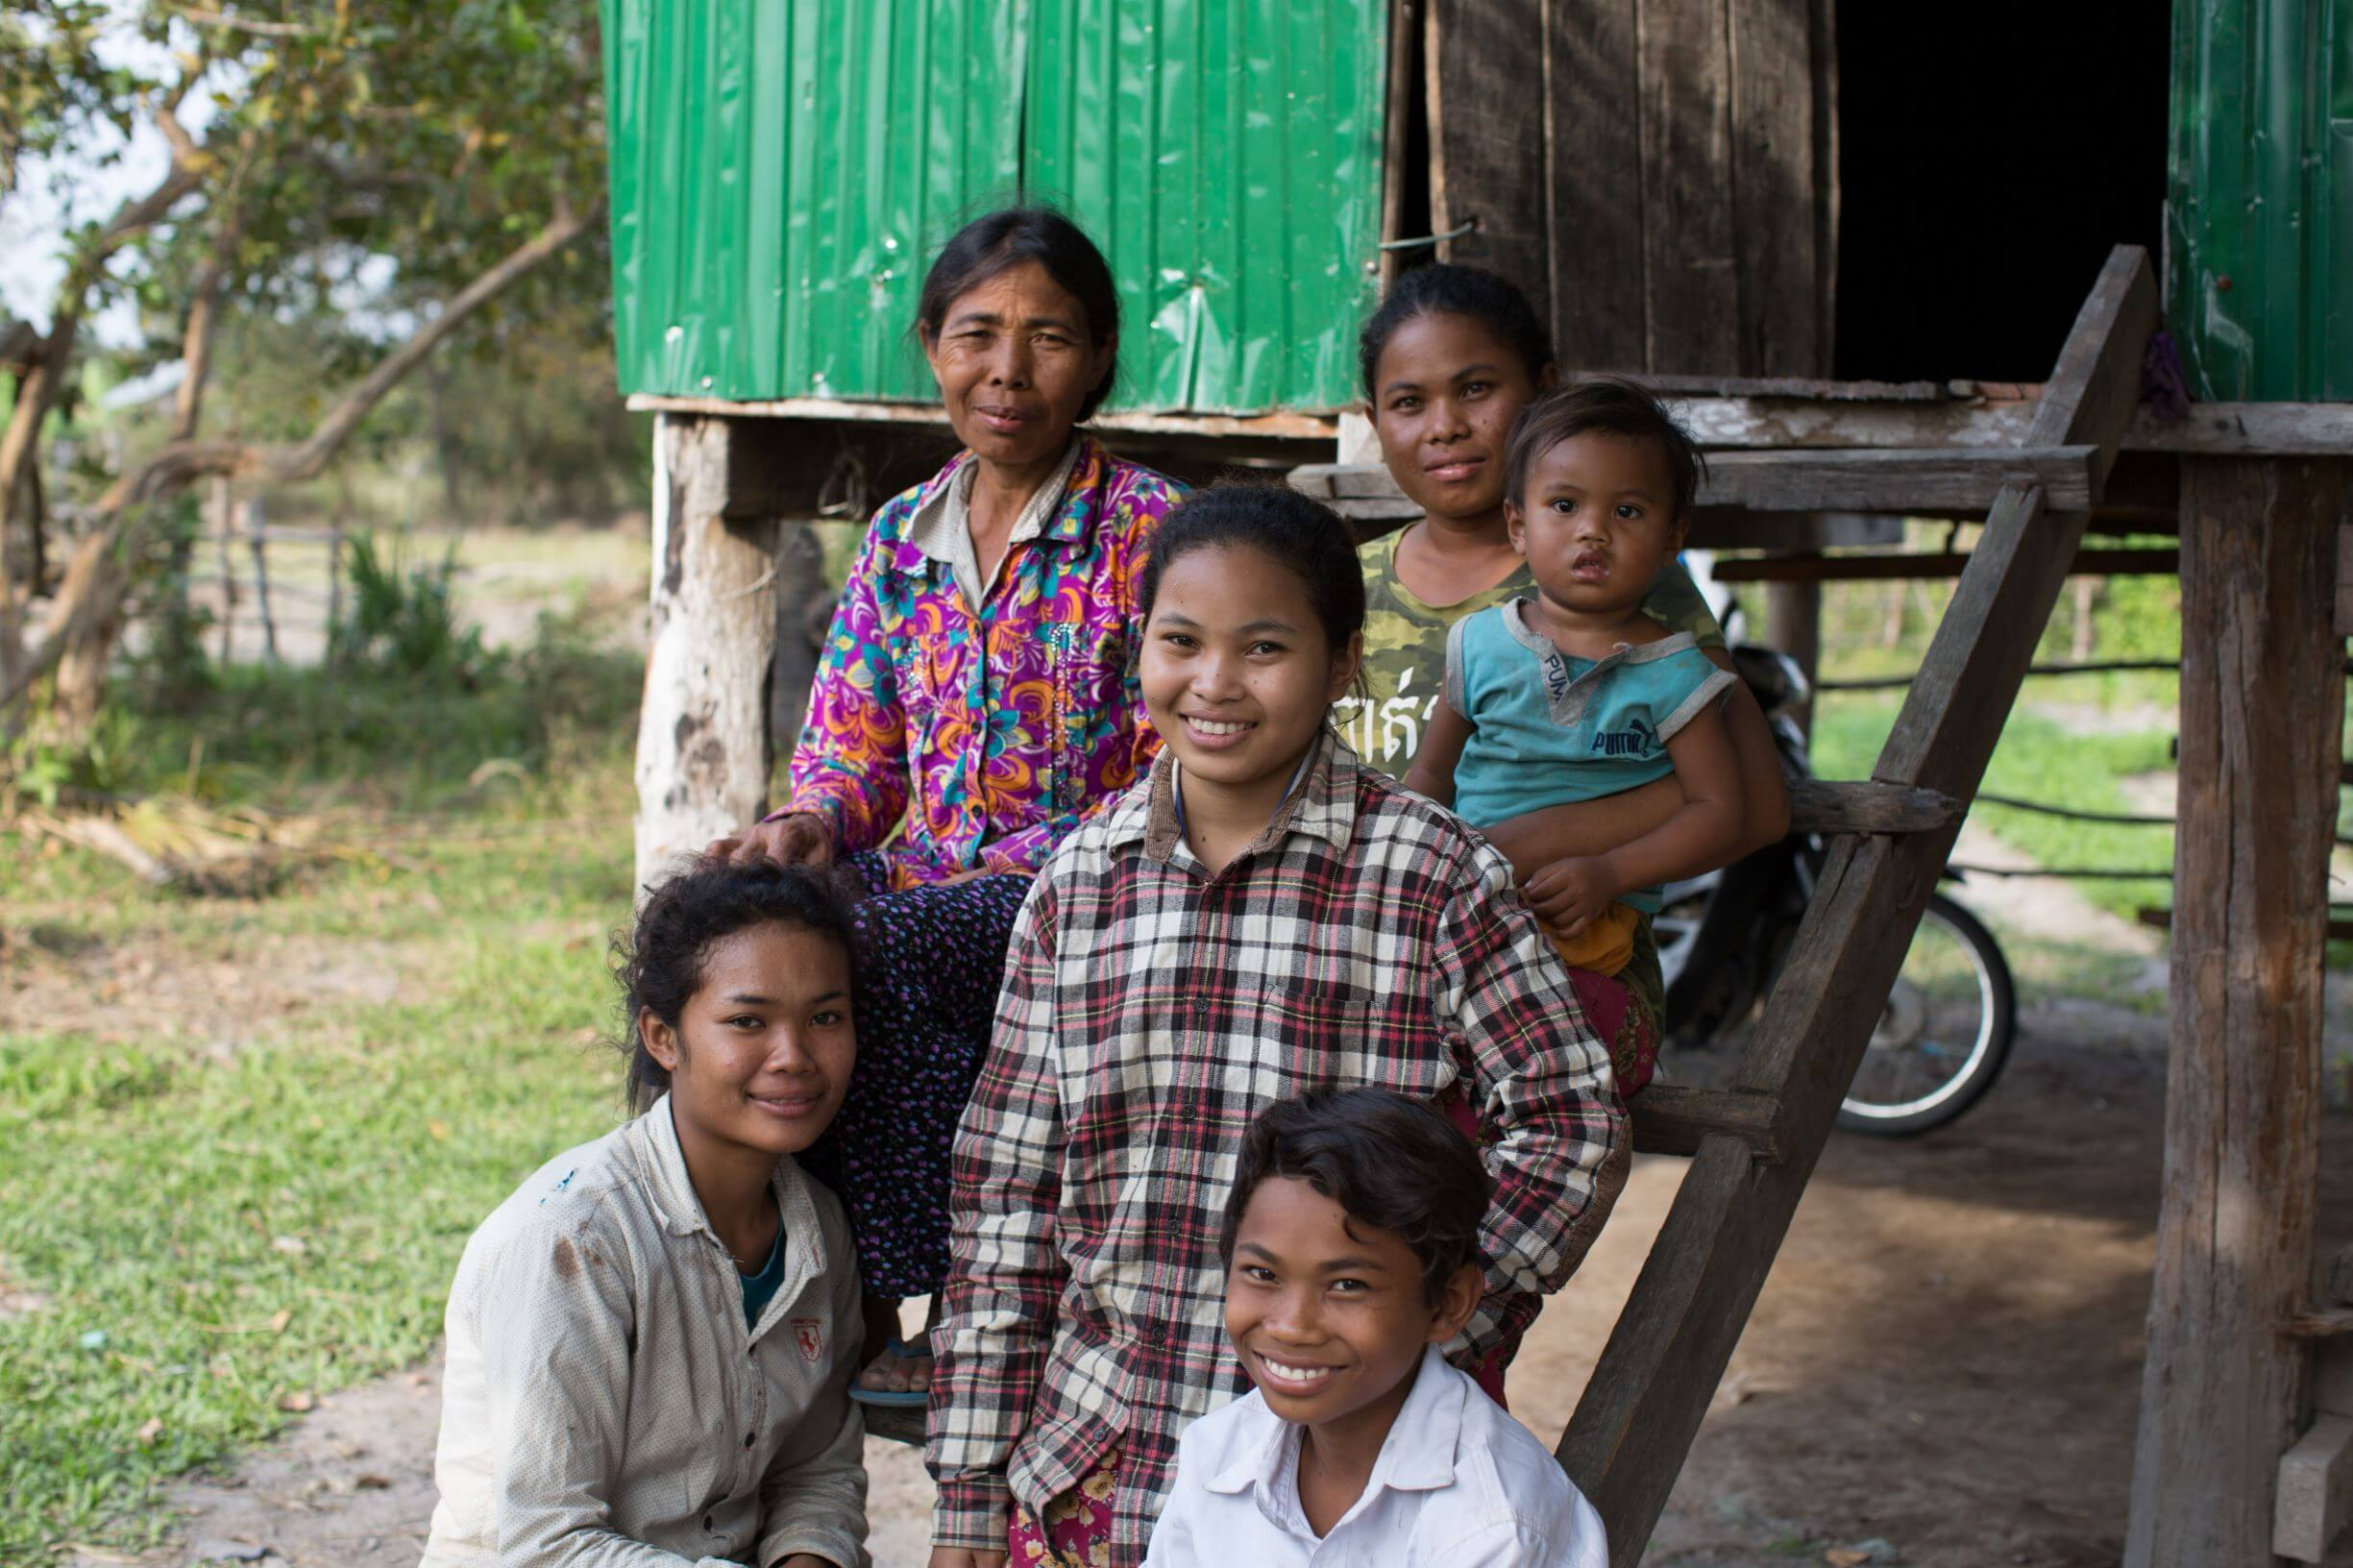 Two years after receiving a well, Phat and her family are healthy and smiling. They have a thriving business selling vegetables at the market, and the children are finally able to attend school.